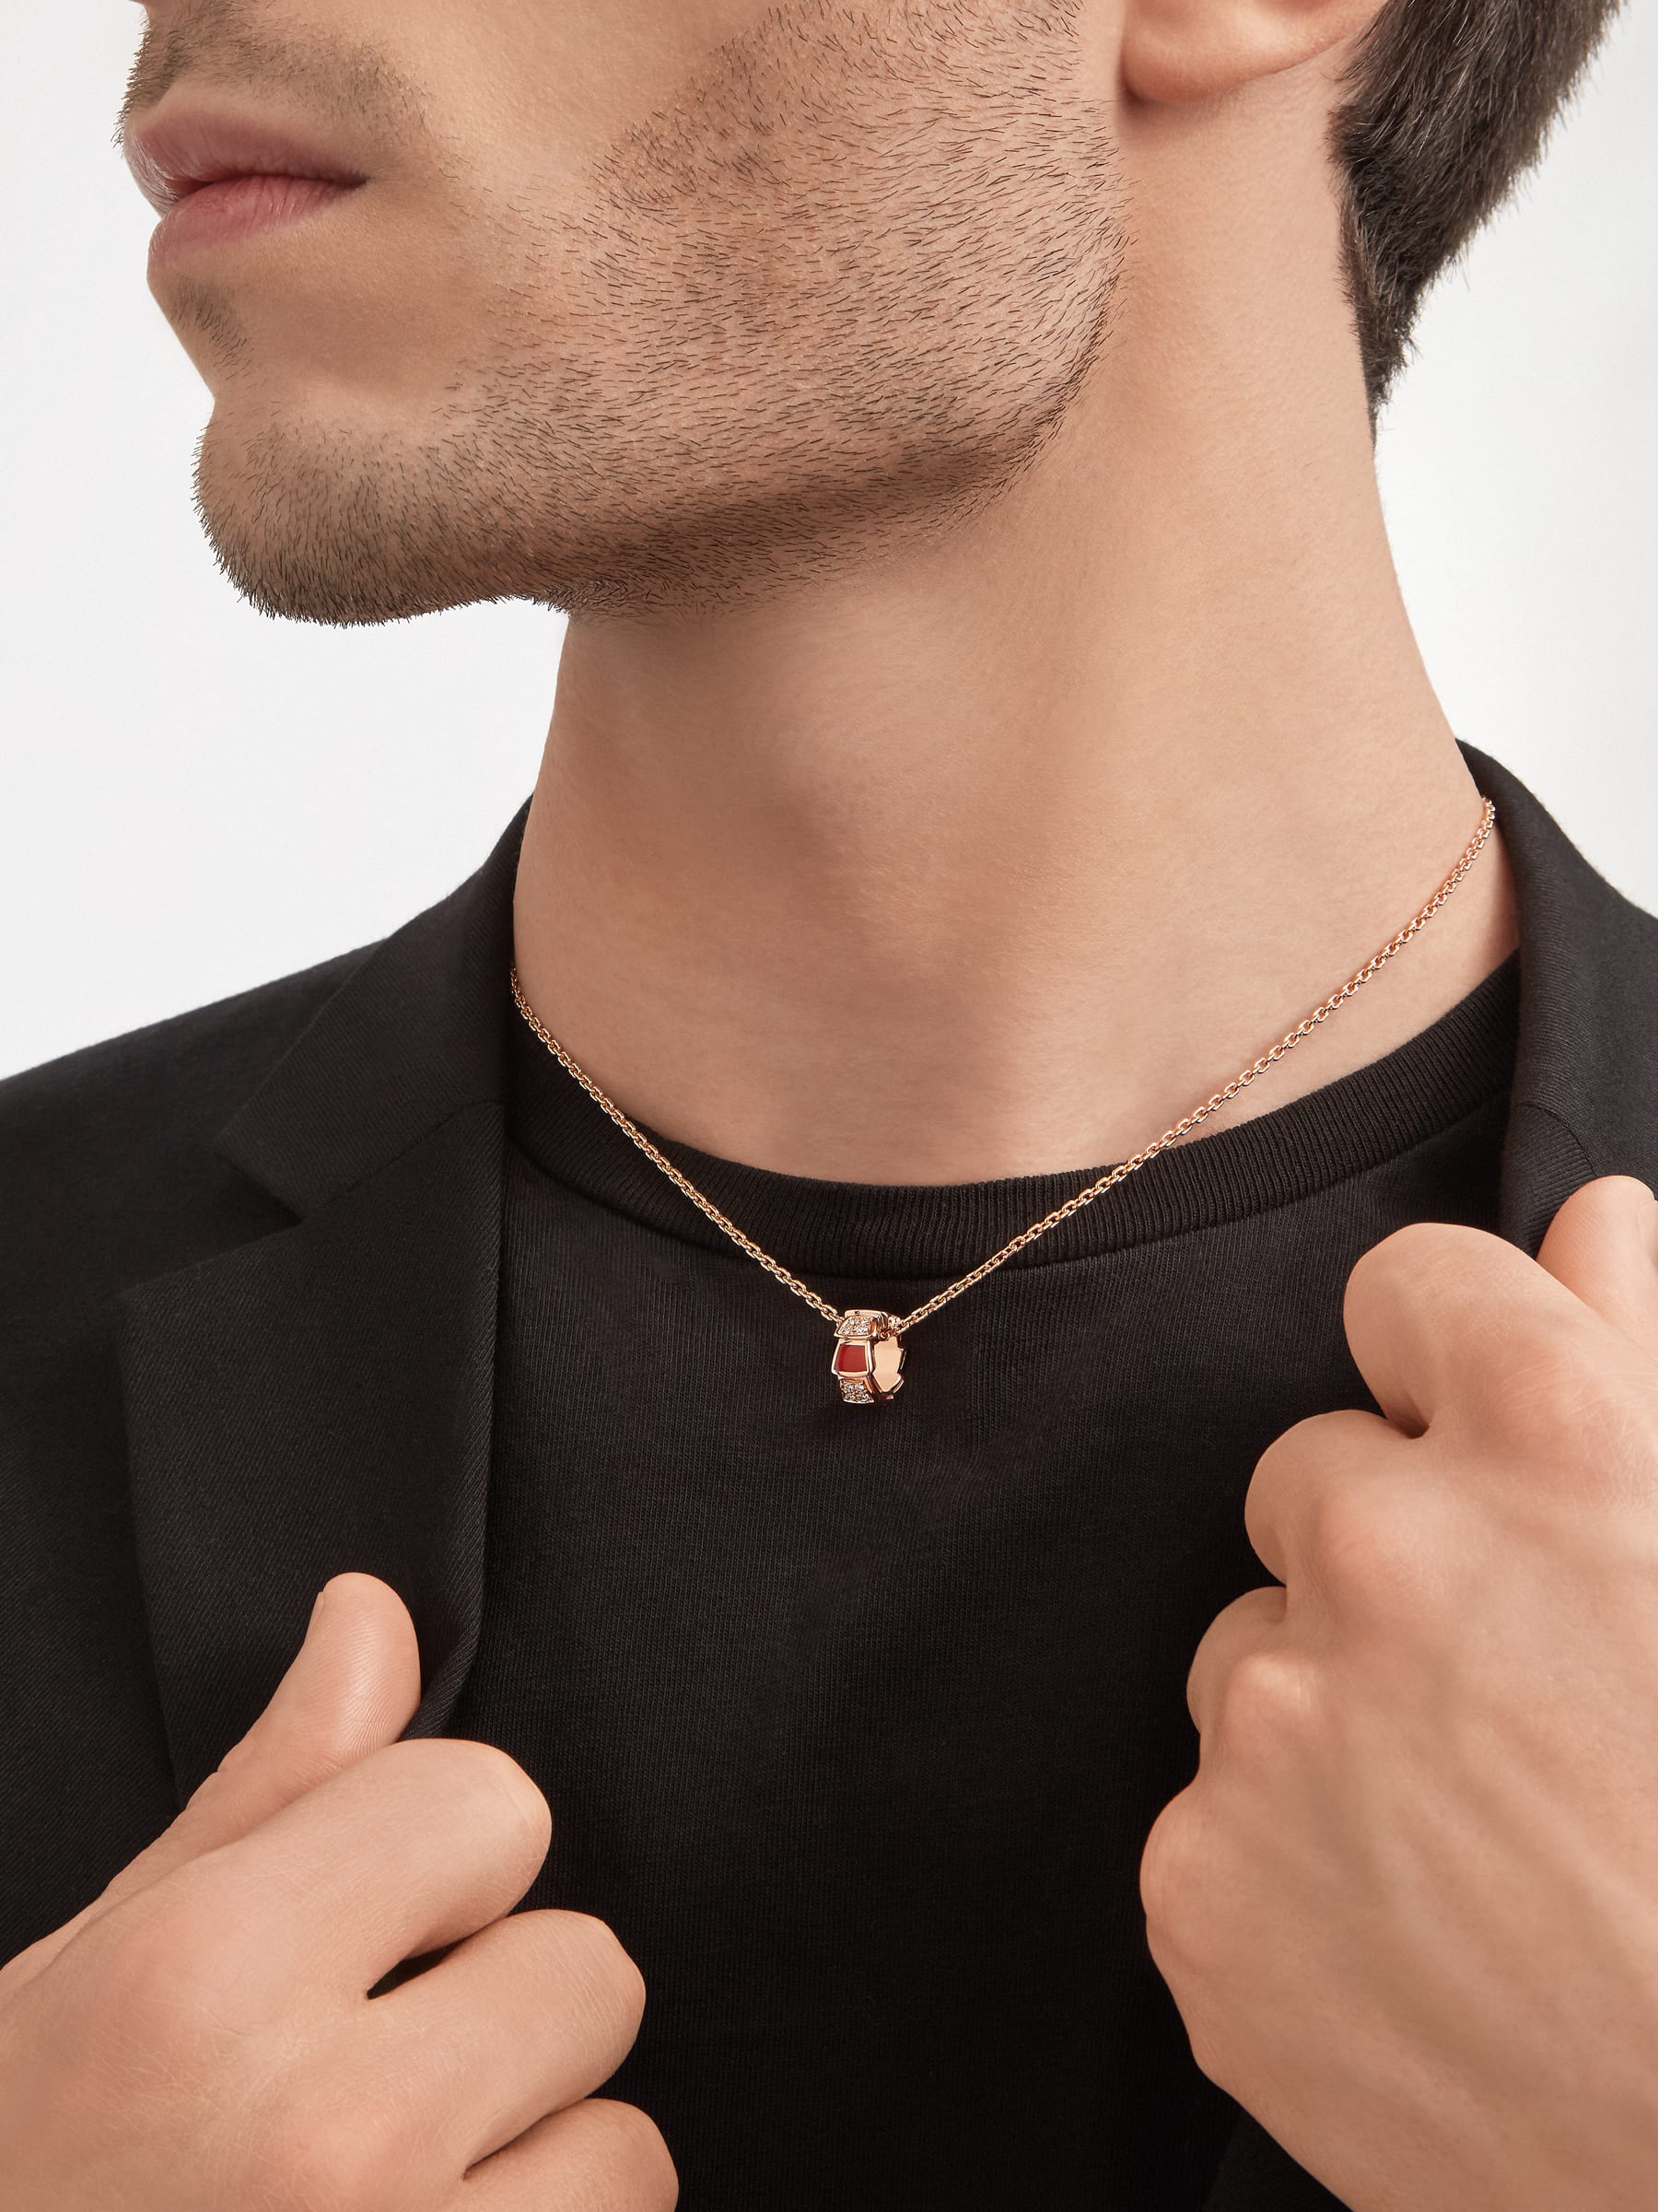 Serpenti Viper necklace with 18 kt rose gold chain and 18 kt rose gold pendant set with carnelian elements and demi pavé diamonds. 355088 image 5